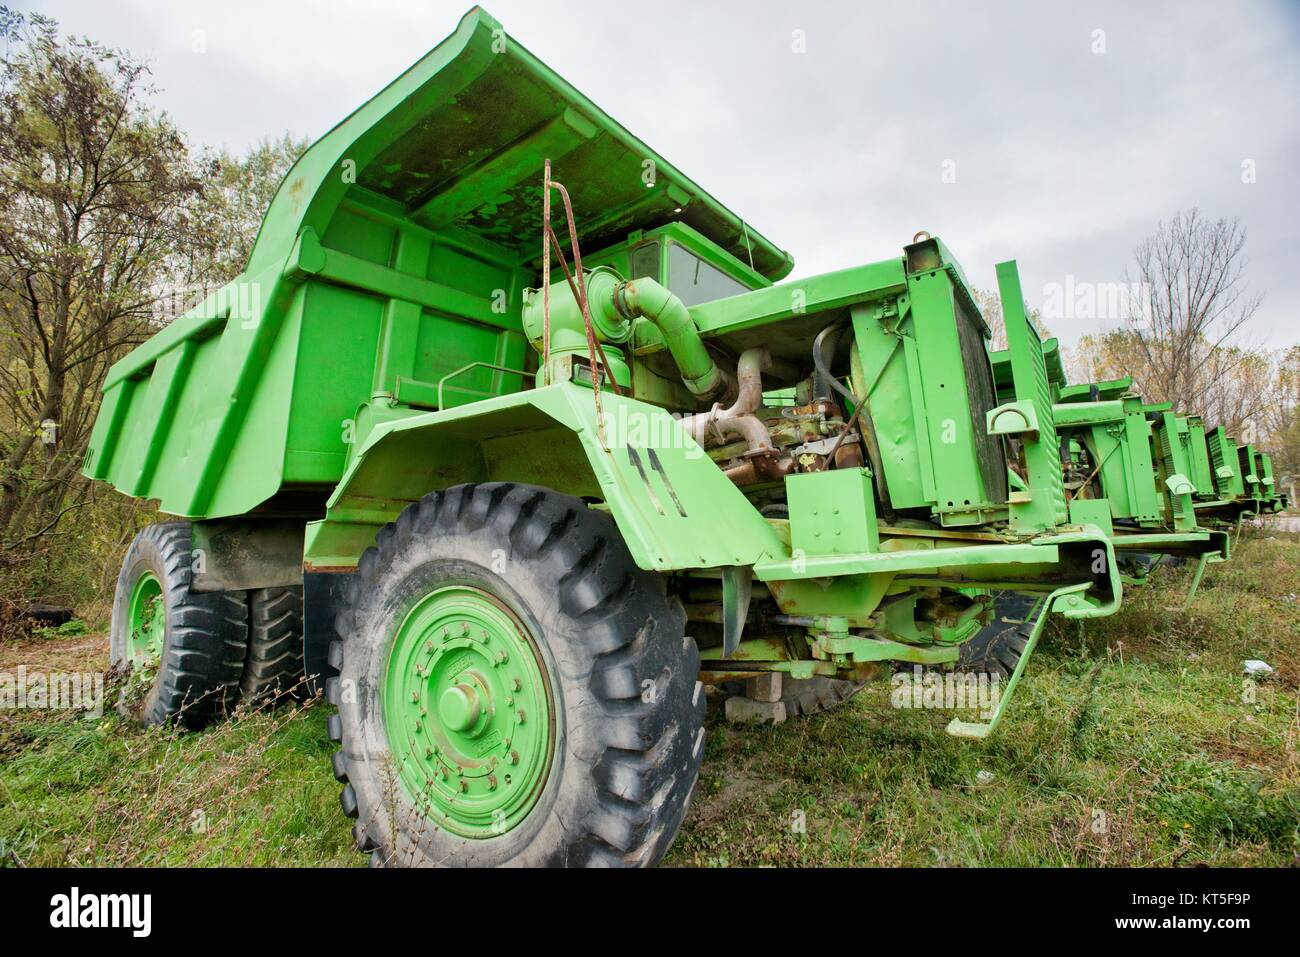 Aging rural communities such as Boljevac in Serbia - Old trucks - Stock Image